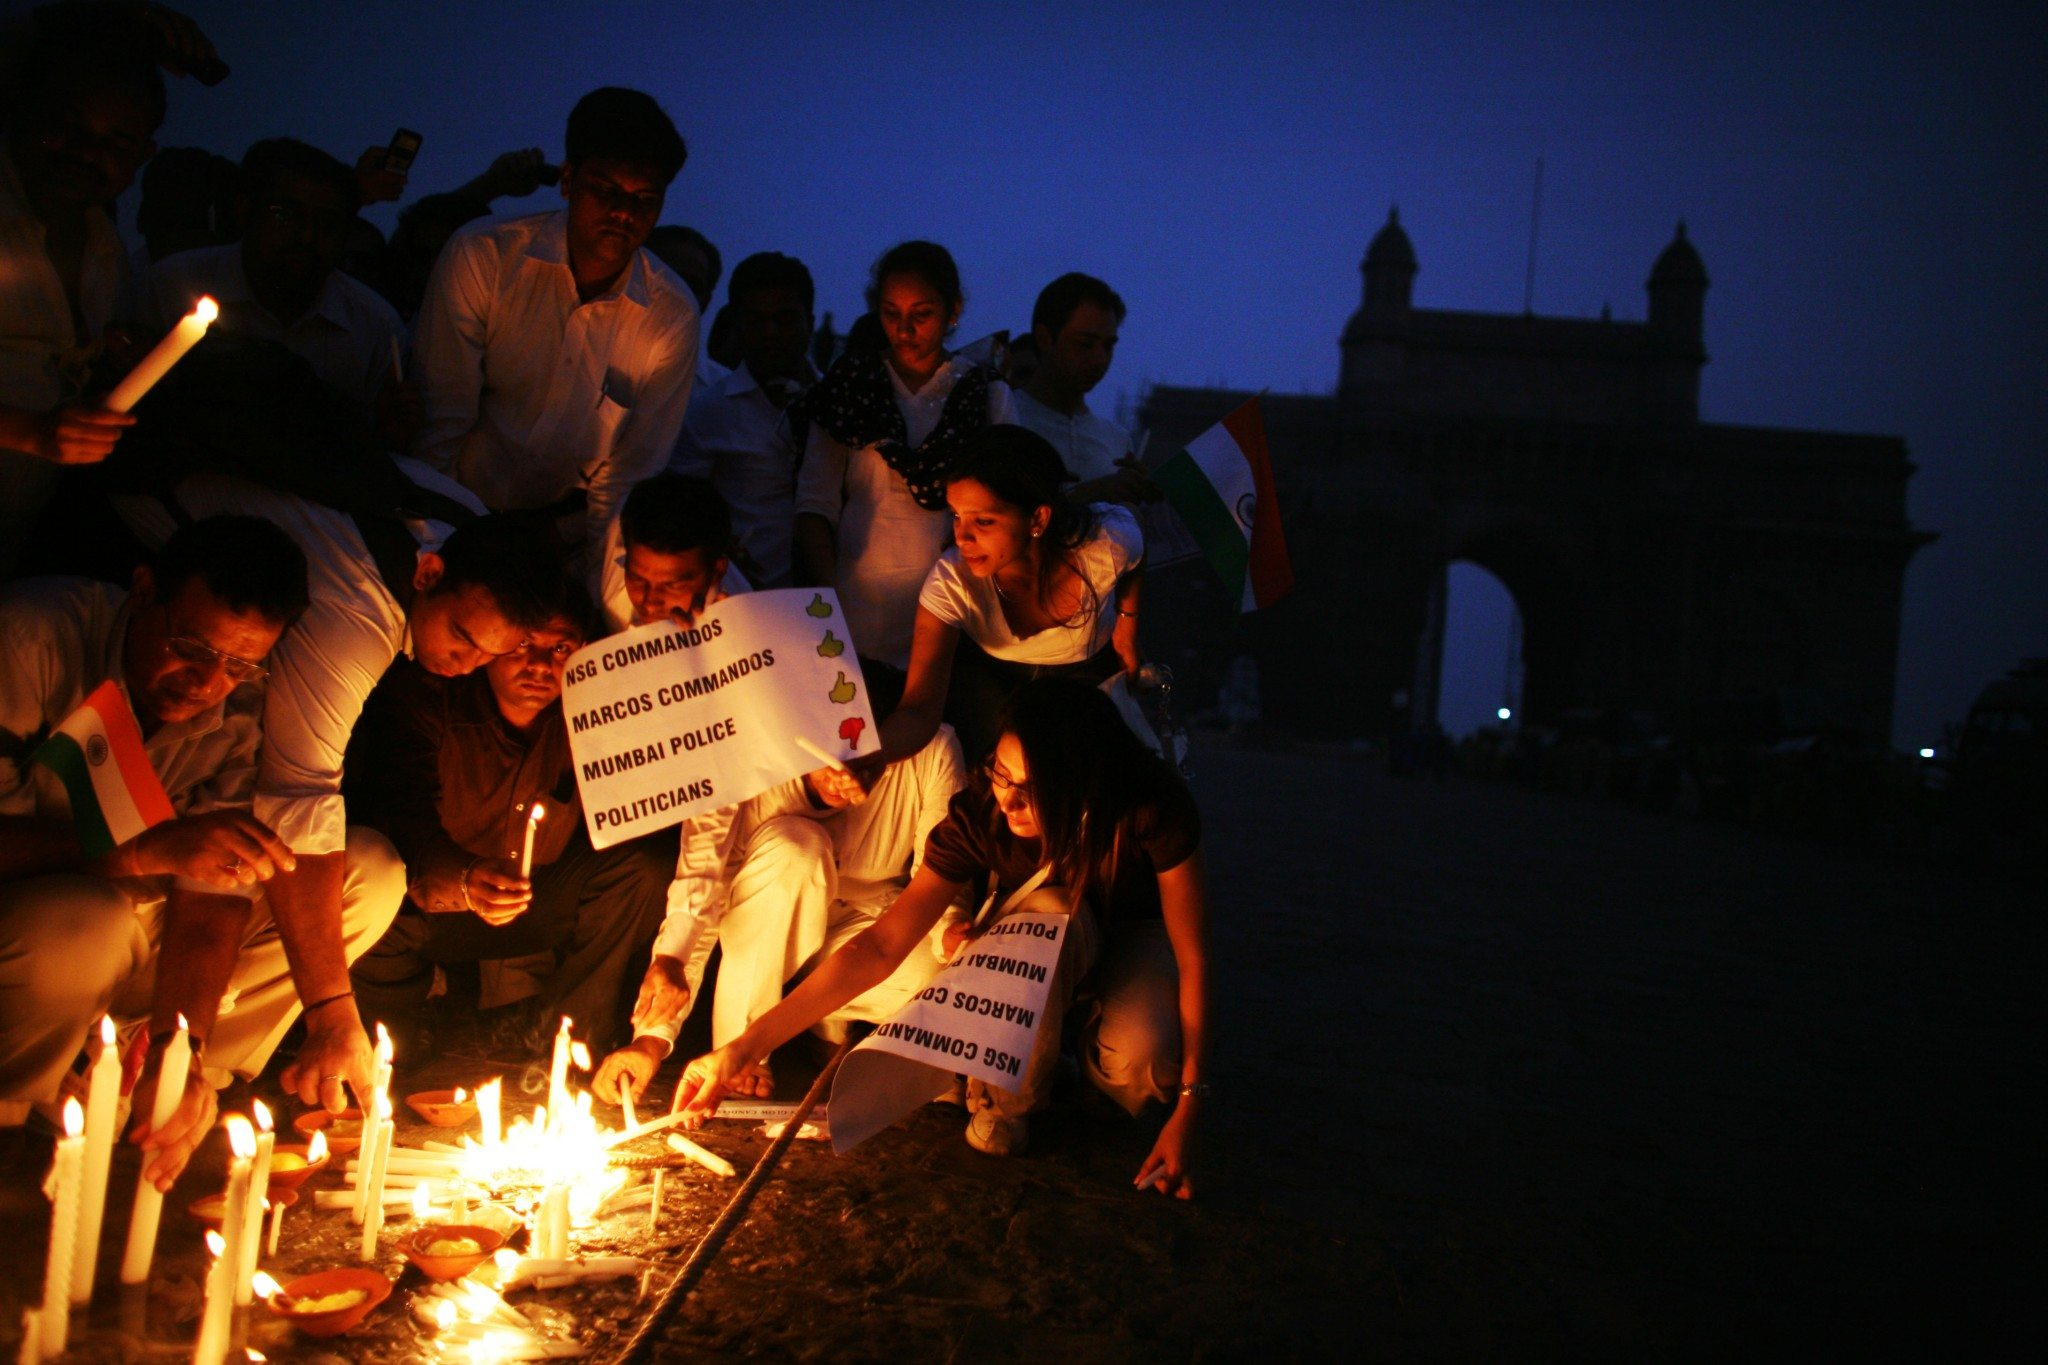 MUMBAI (BOMBAY), INDIA - DECEMBER 03: (ISRAEL OUT) Mumbaikars light candles as they take part in a mass demonstration march following last weeks series of terrorist attacks on the city, near the Taj Mahal Palace & Tower Hotel, on December, 03, 2008 in Mumbai, India. Two bombs were discovered and defused earlier today by Mumbai police at a train station, the Chhatrapati Shivaji Terminus, that was one of the locations attacked by the terrorists. The attacks left almost 200 hundred dead and injured over 300 people. (Photo by Uriel Sinai/Getty Images)